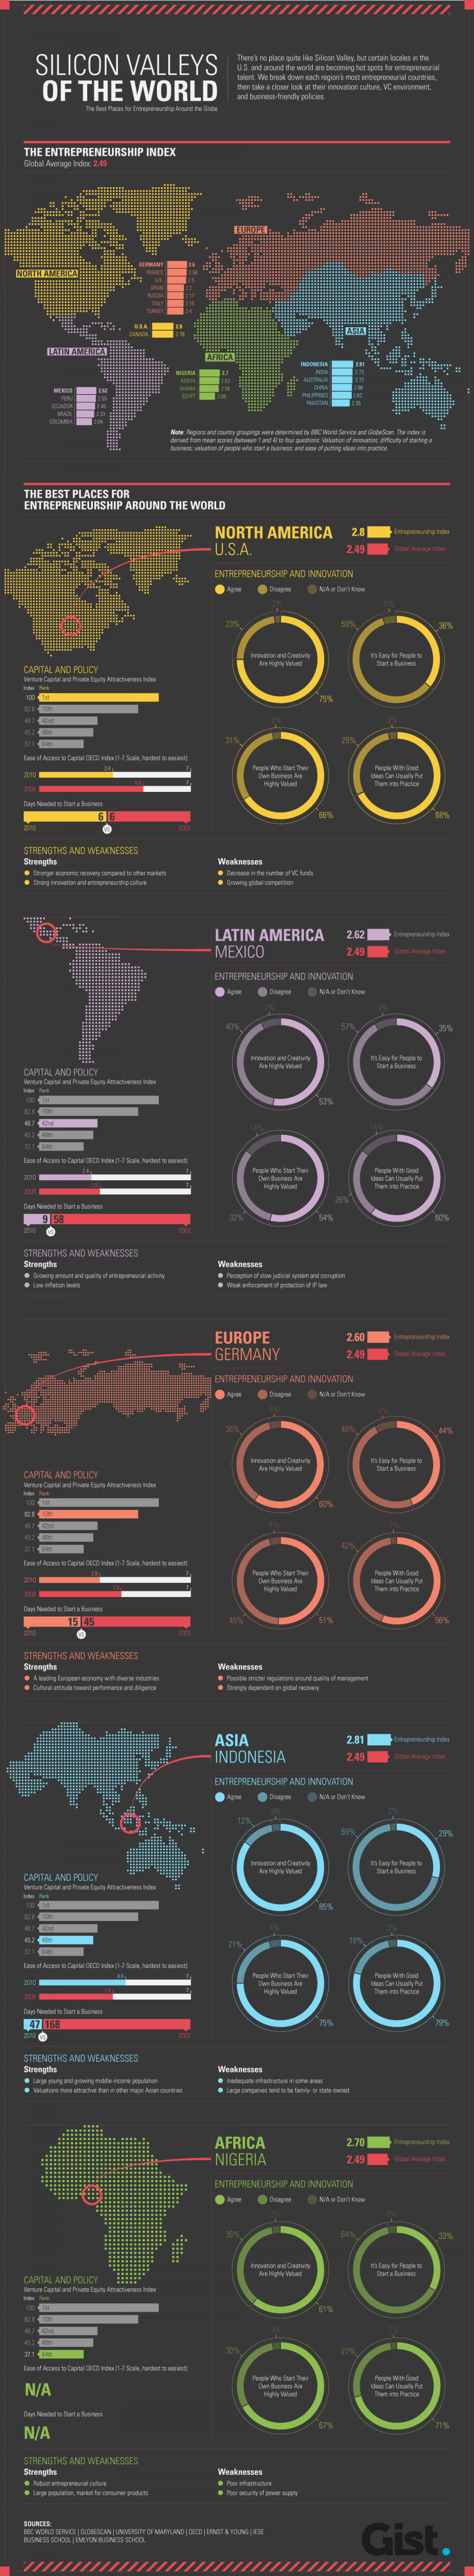 Silicon Valleys of the World Infographic